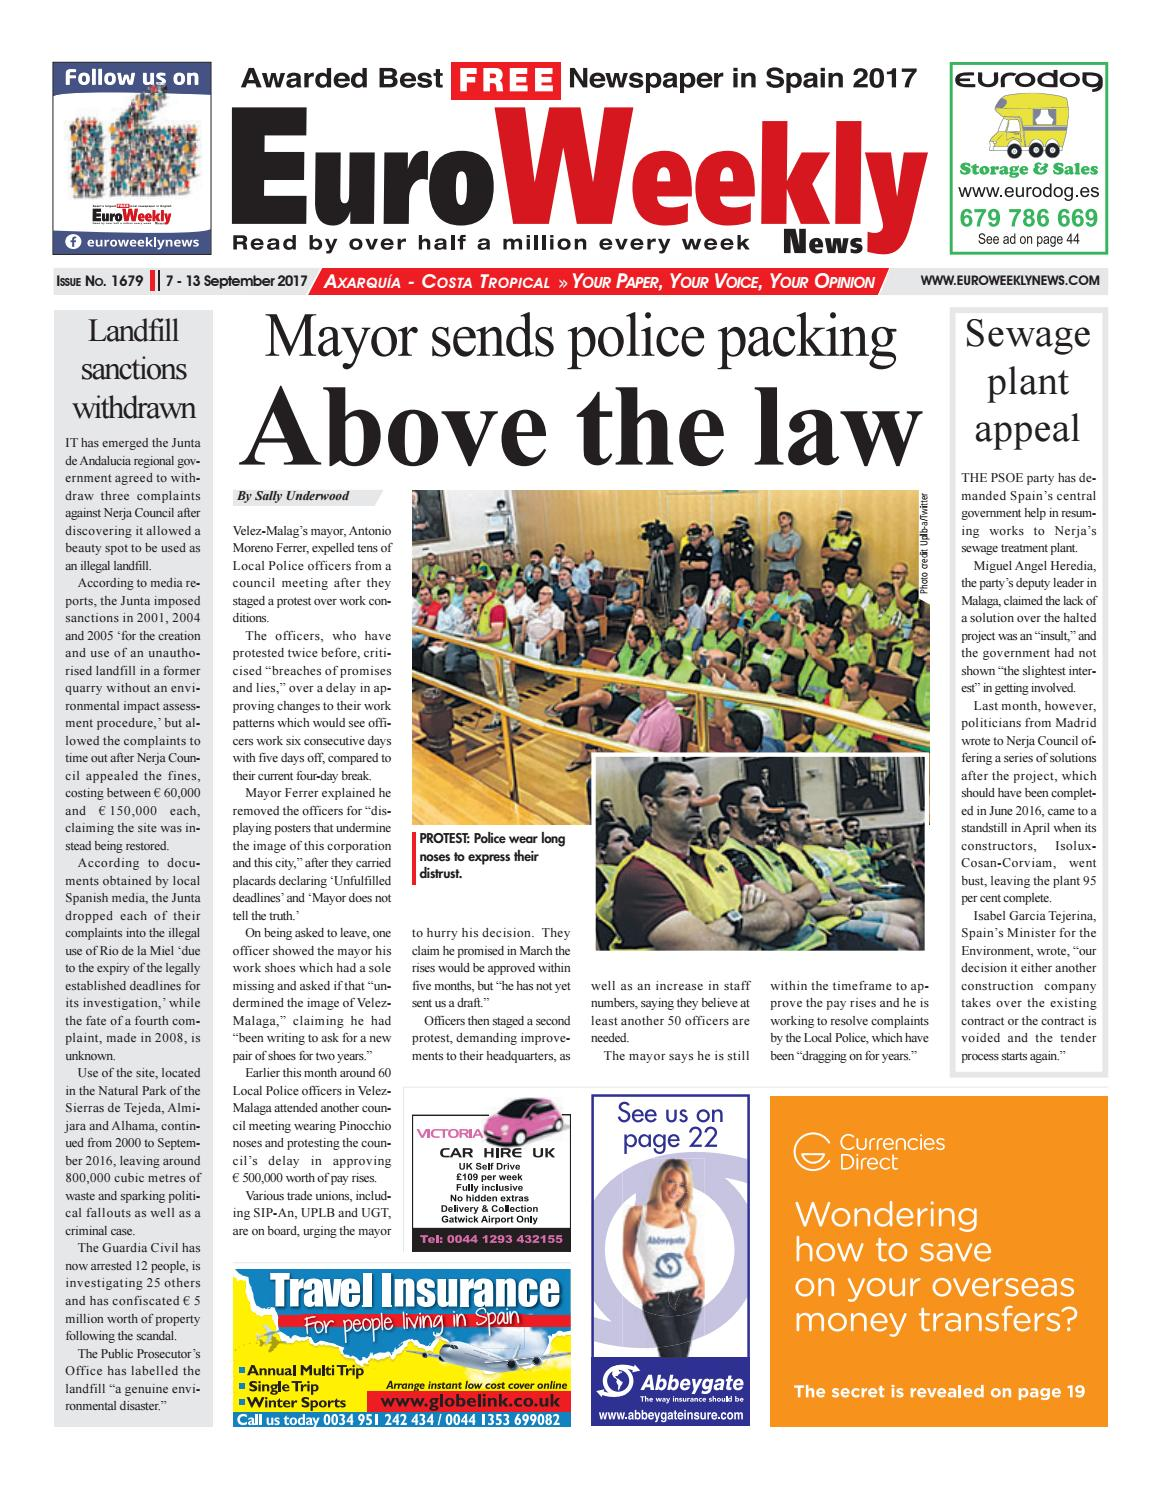 Euro Weekly News Axarquia 7 13 September 2017 Issue 1679